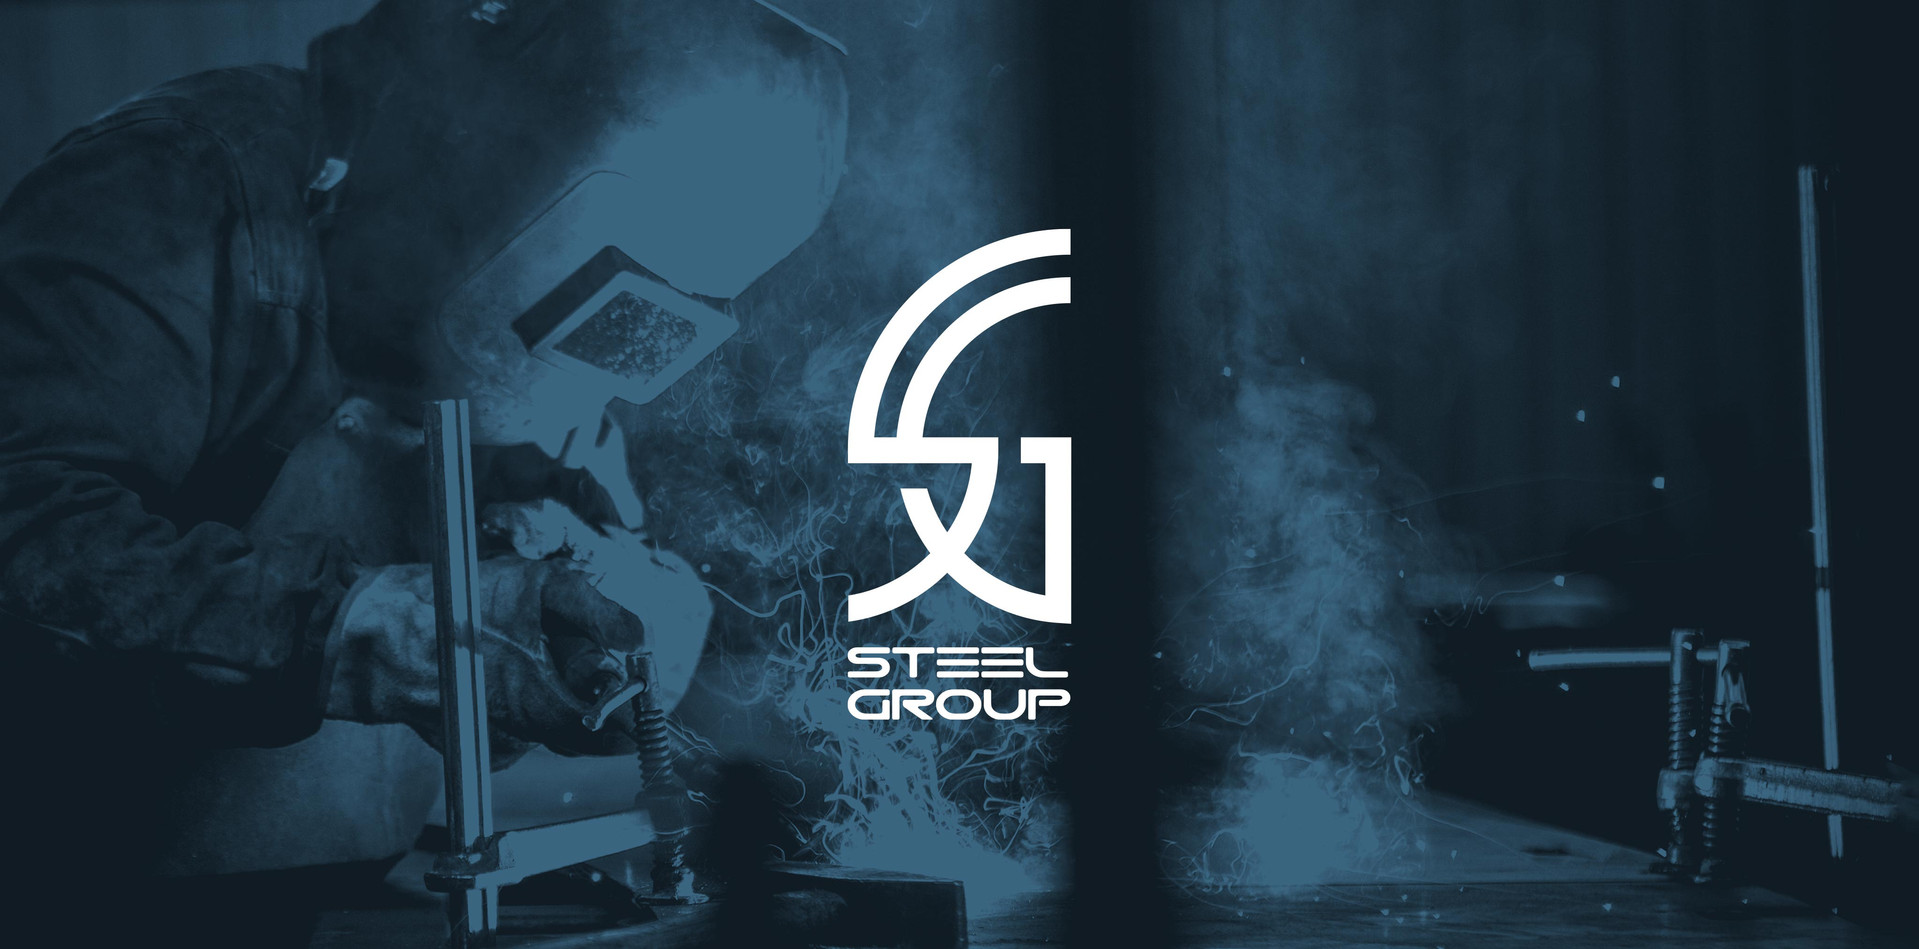 steelgroup_anteprima.jpg